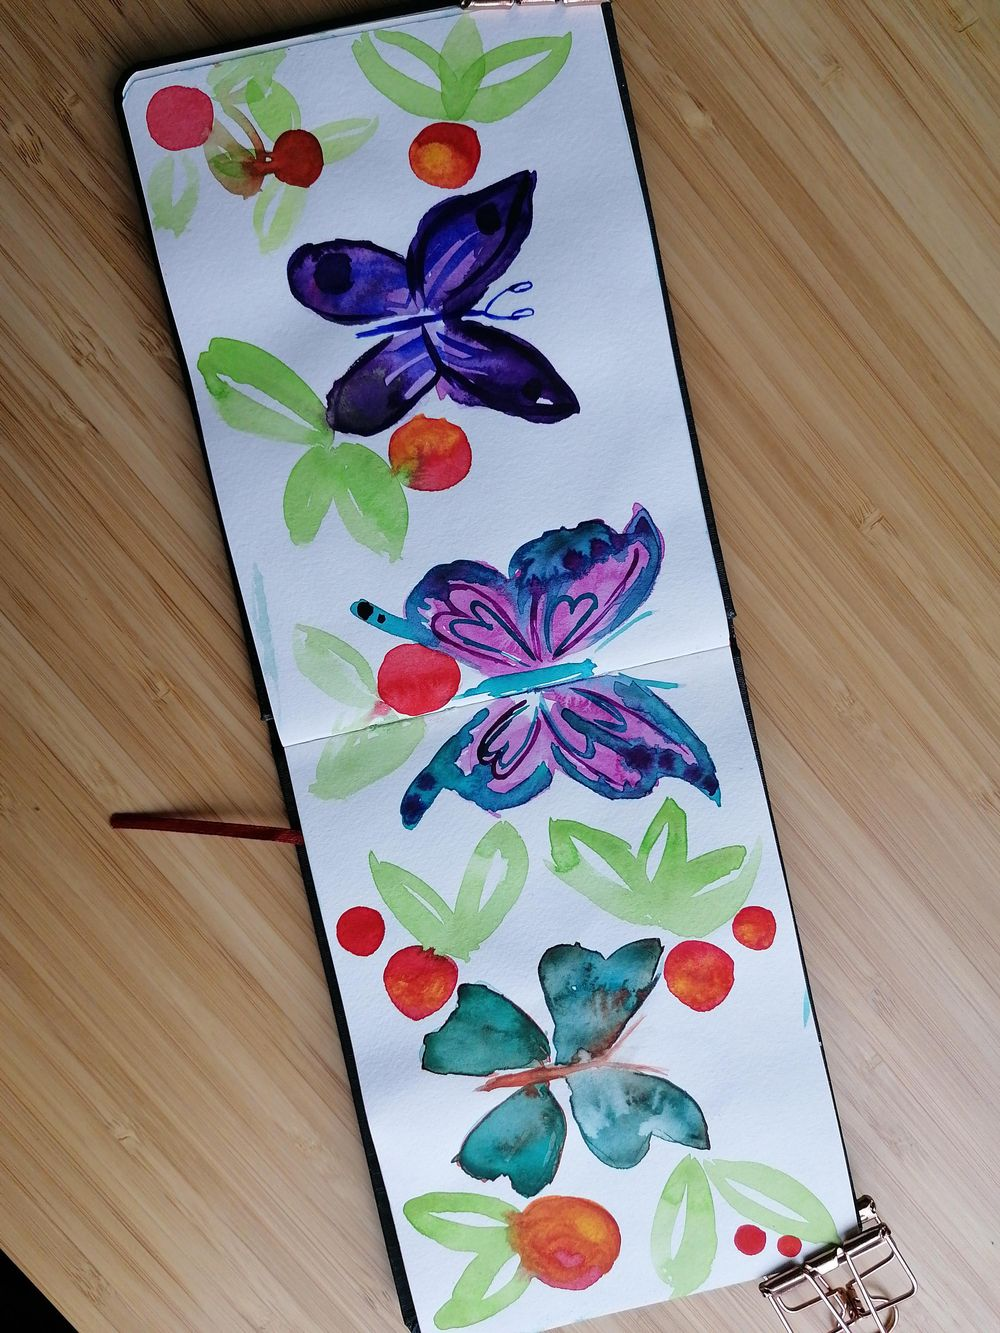 Loose watercolor florals, flowers & butterflies - image 3 - student project